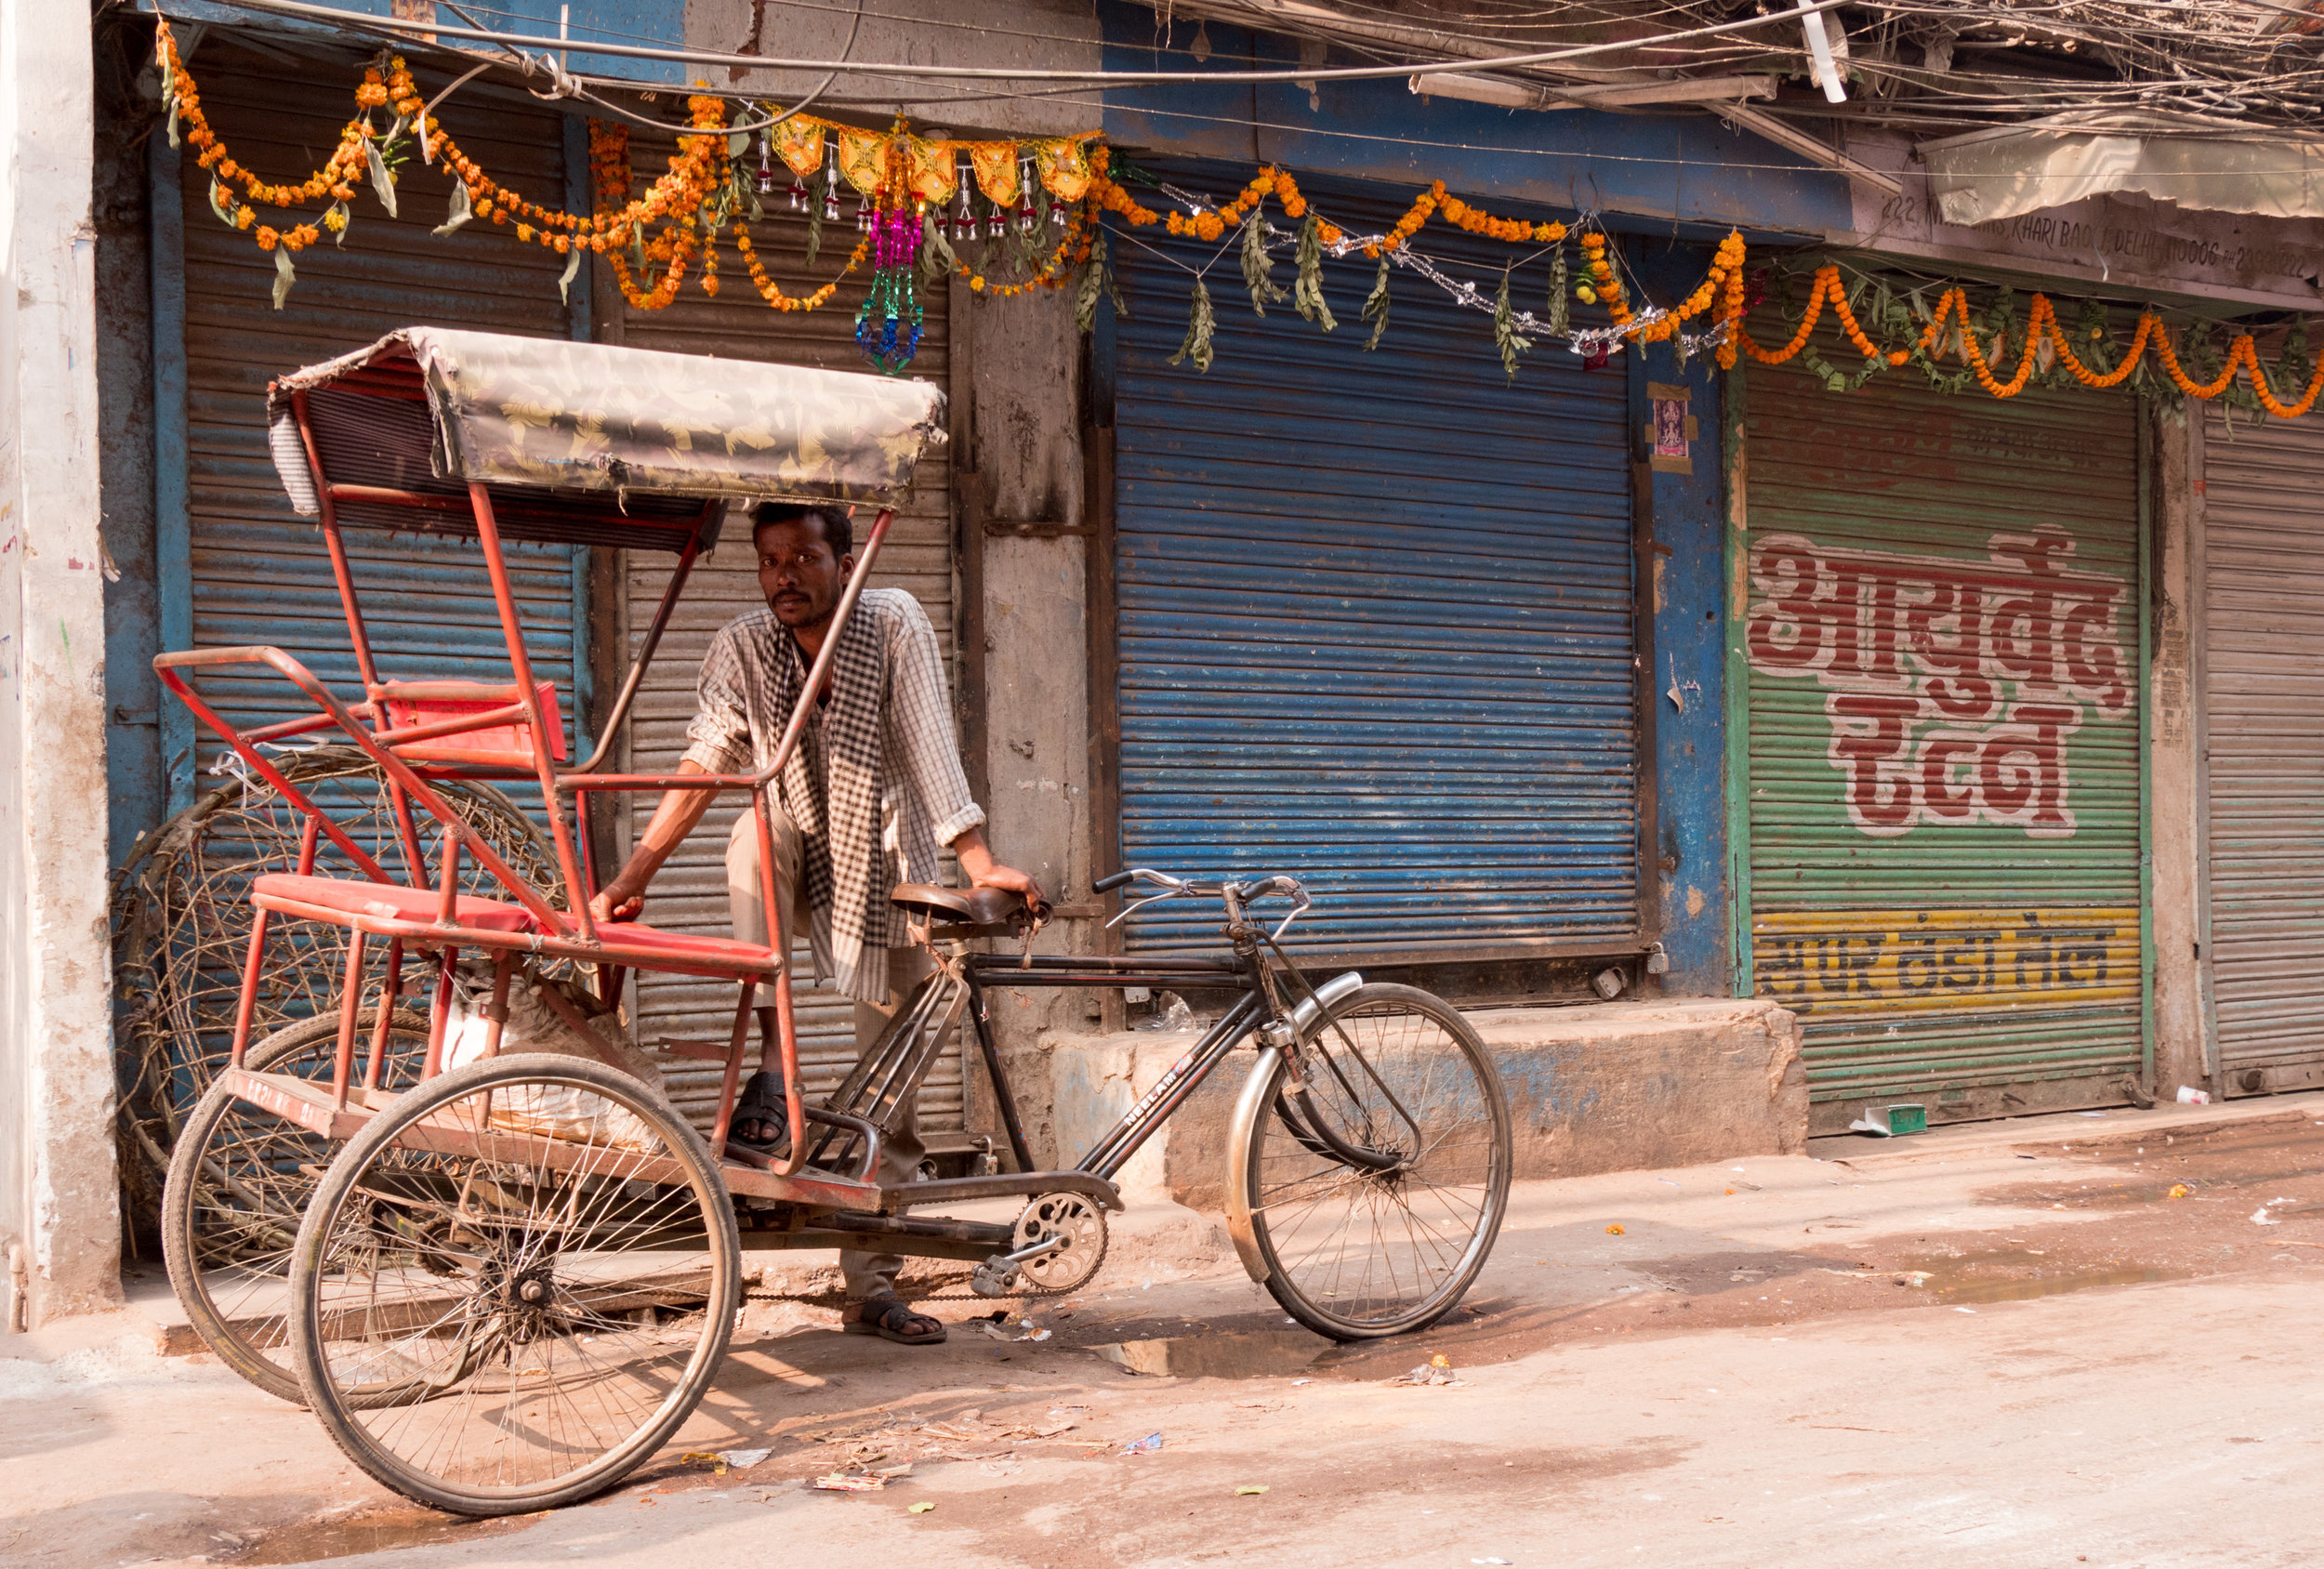 Man Standing with His Rickshaw at Spice Market - Old Delhi, India - Copyright 2016 Ralph Velasco.jpg